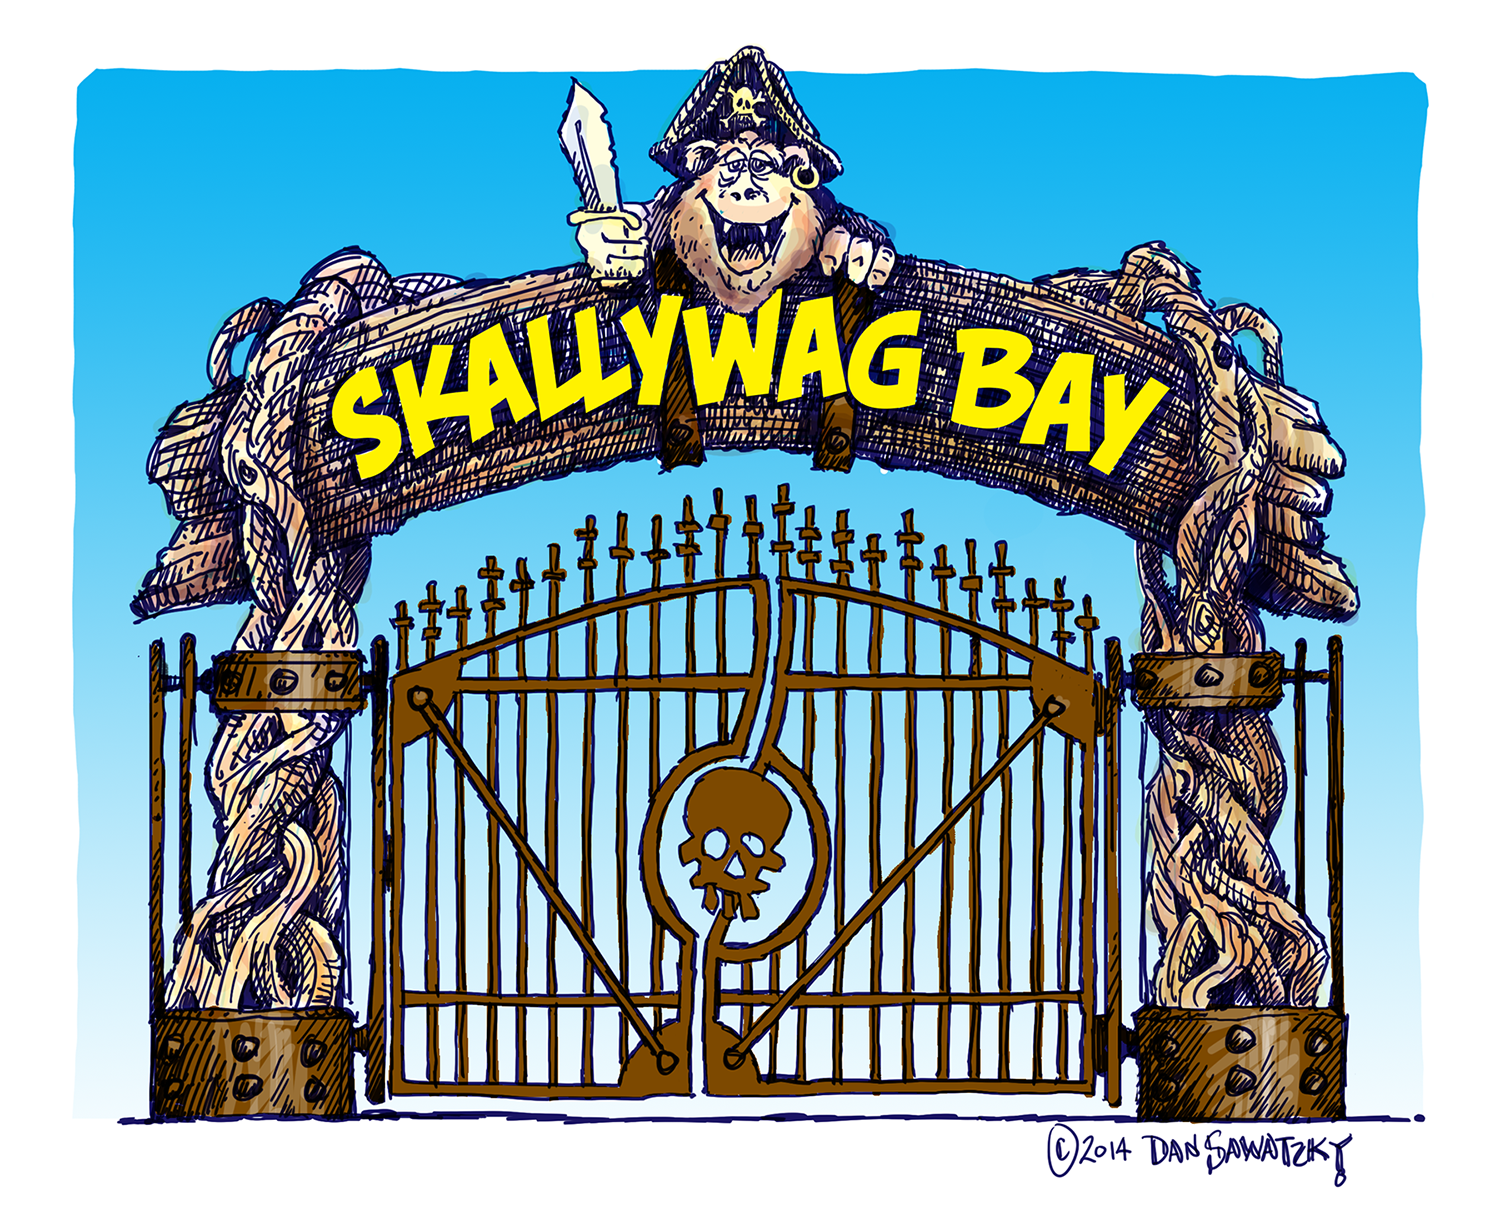 Scallywag Bay main entrance design